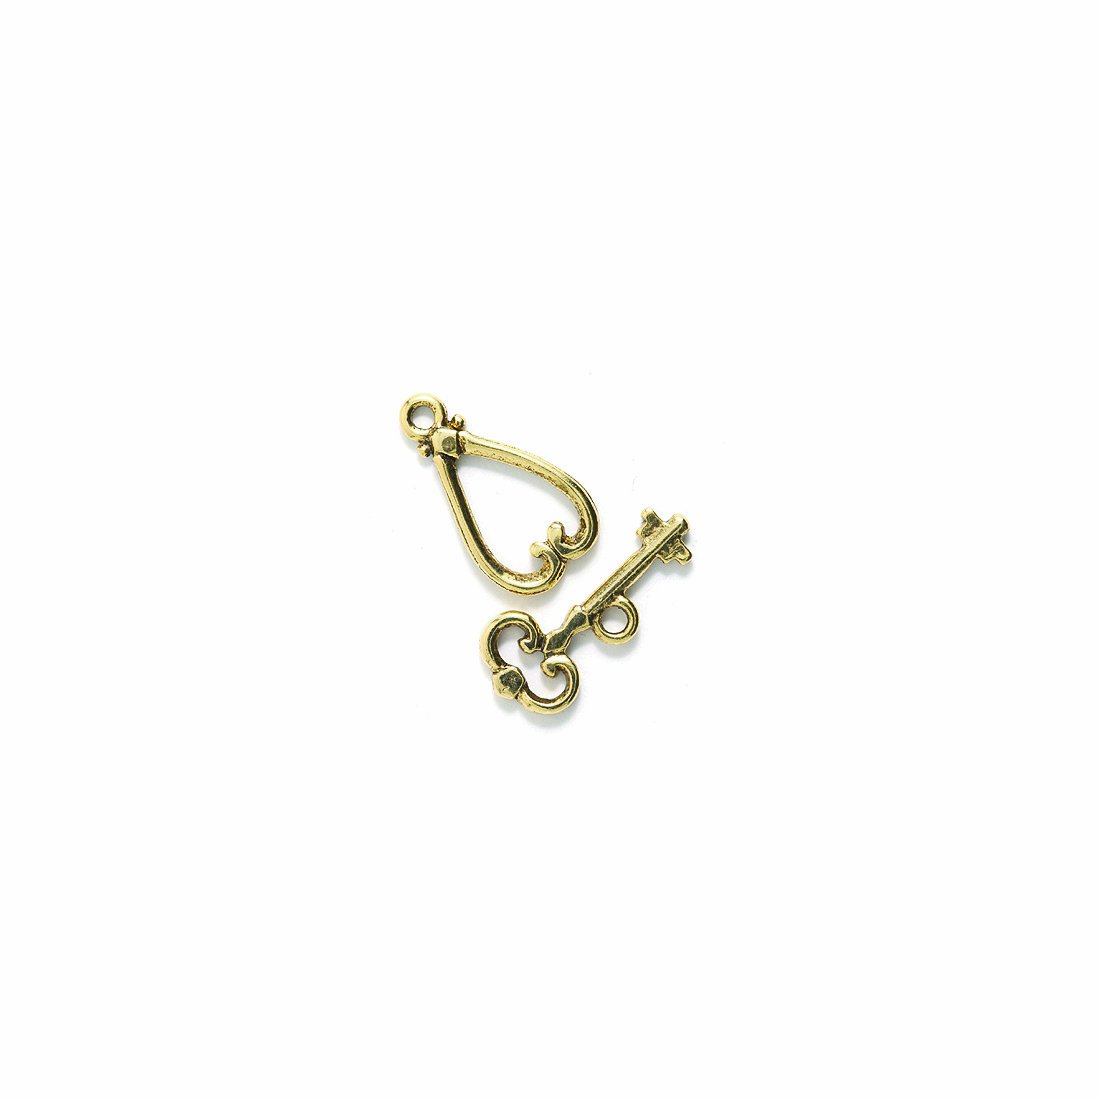 Metallic 21mm Shipwreck Beads Pewter Heart and Key Toggle Clasp Set of 3 Antique Gold